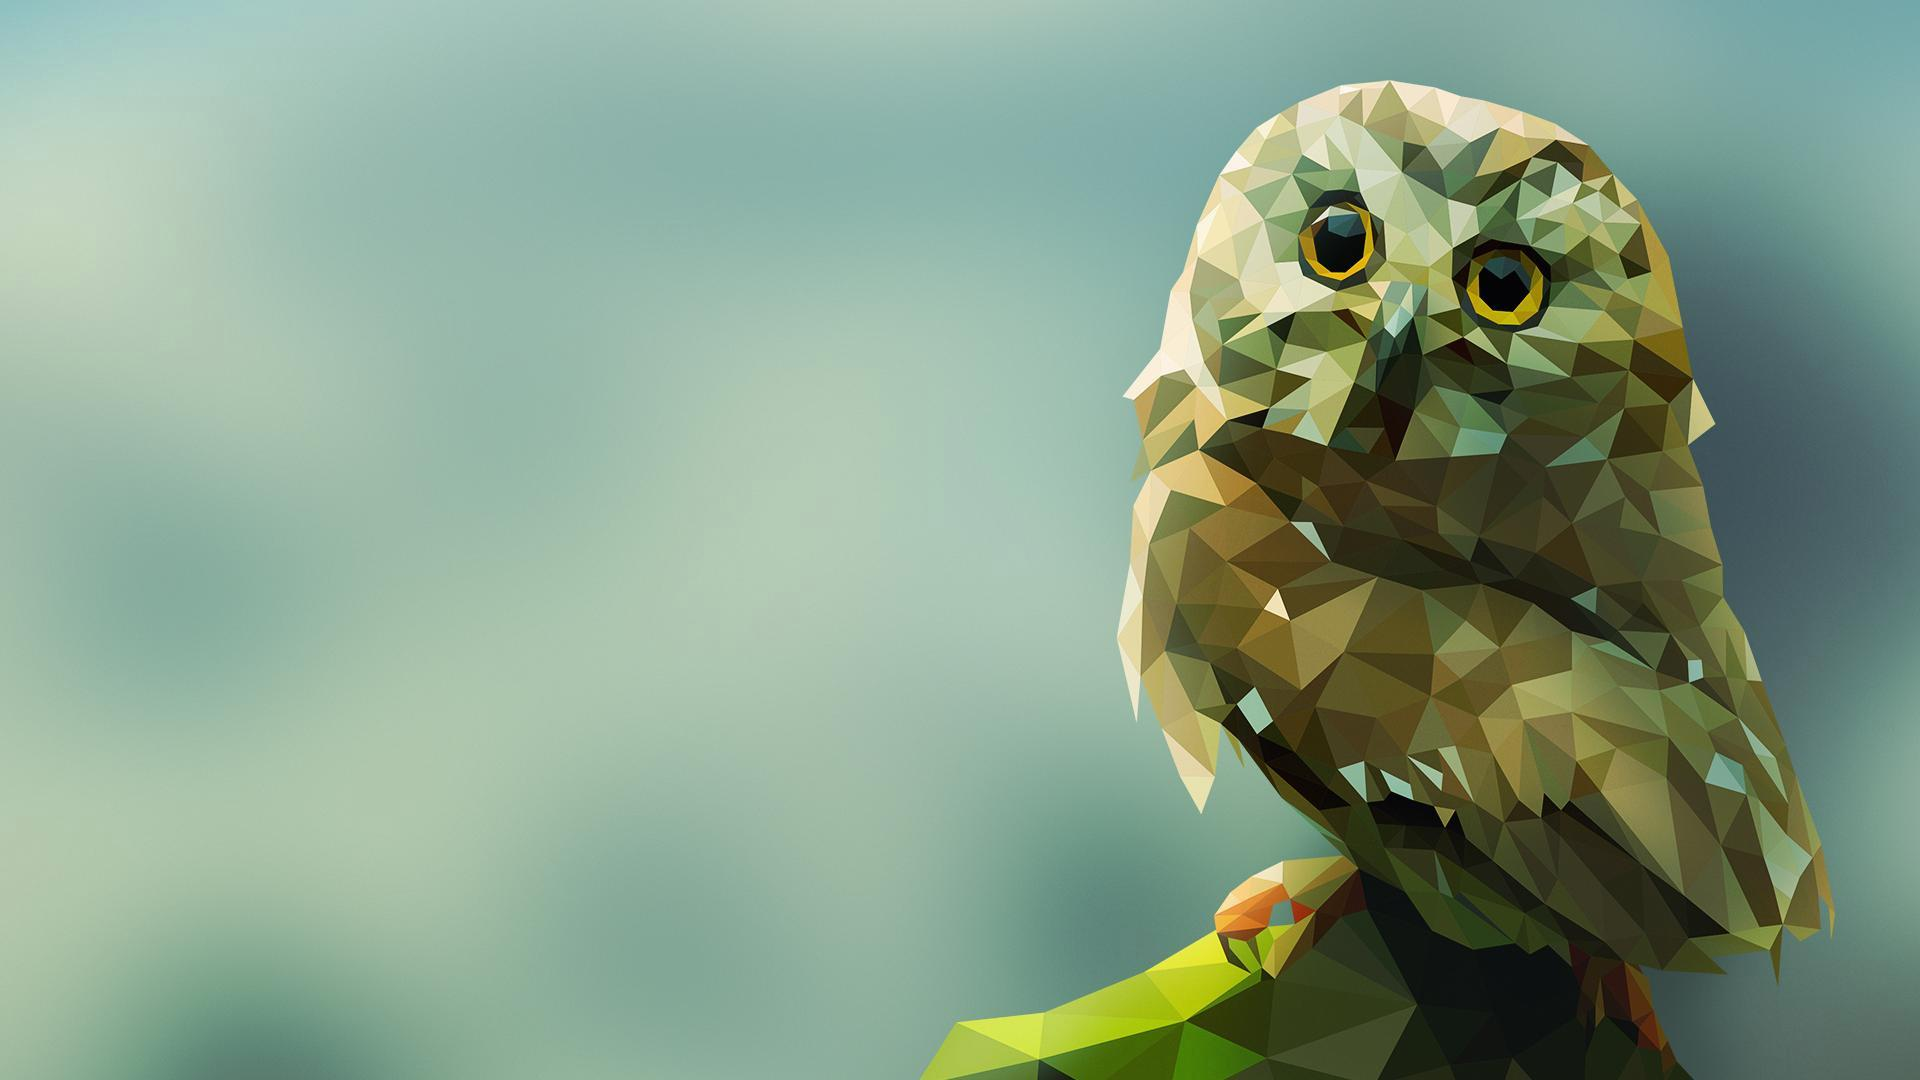 3d-Owl-1920x1080-wallpaper-wpc5801431